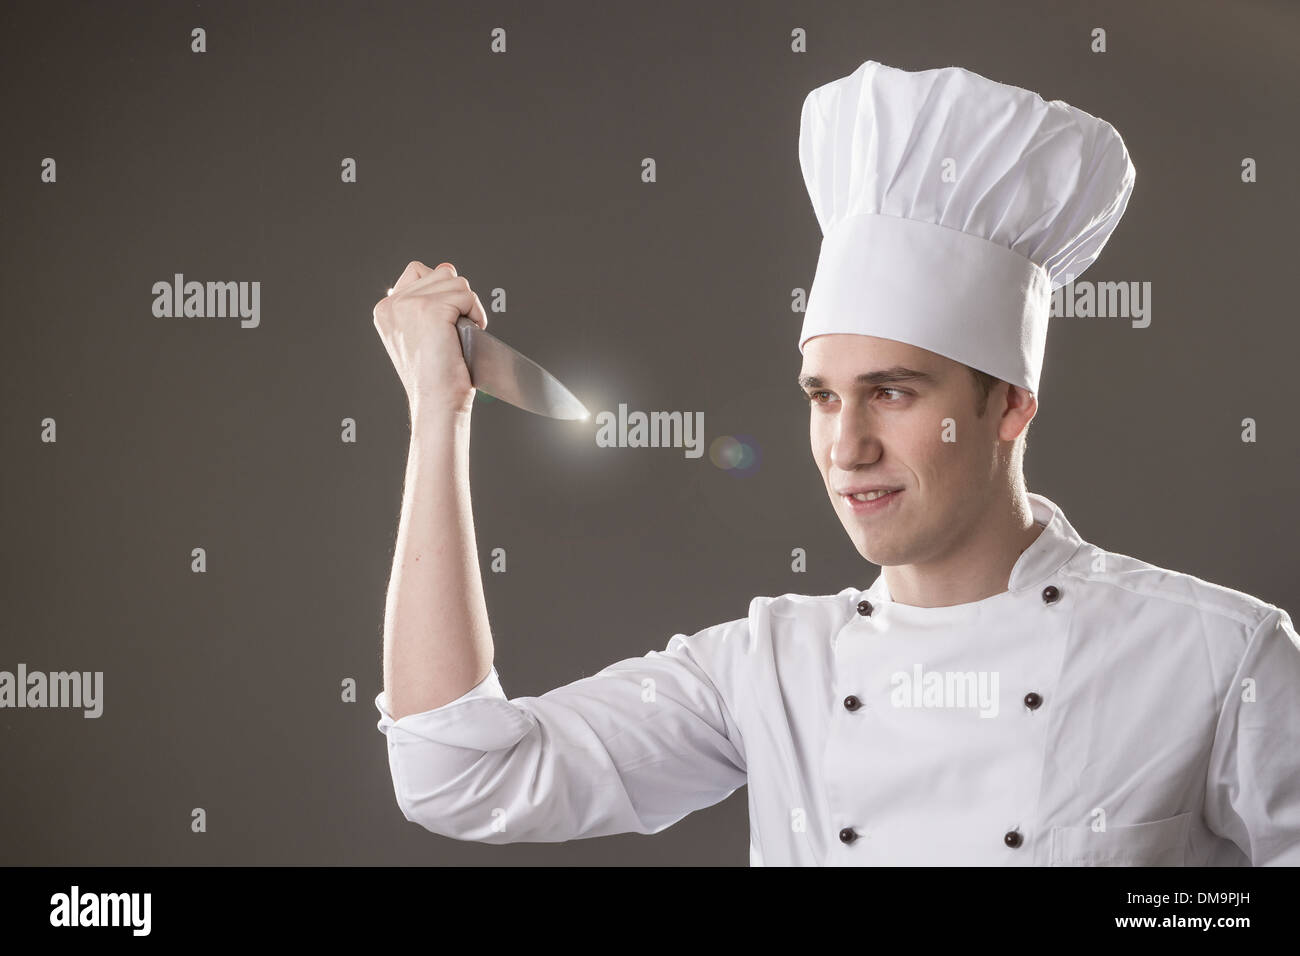 Portrait of smiling chef with in hand isolated on grey background Stock Photo